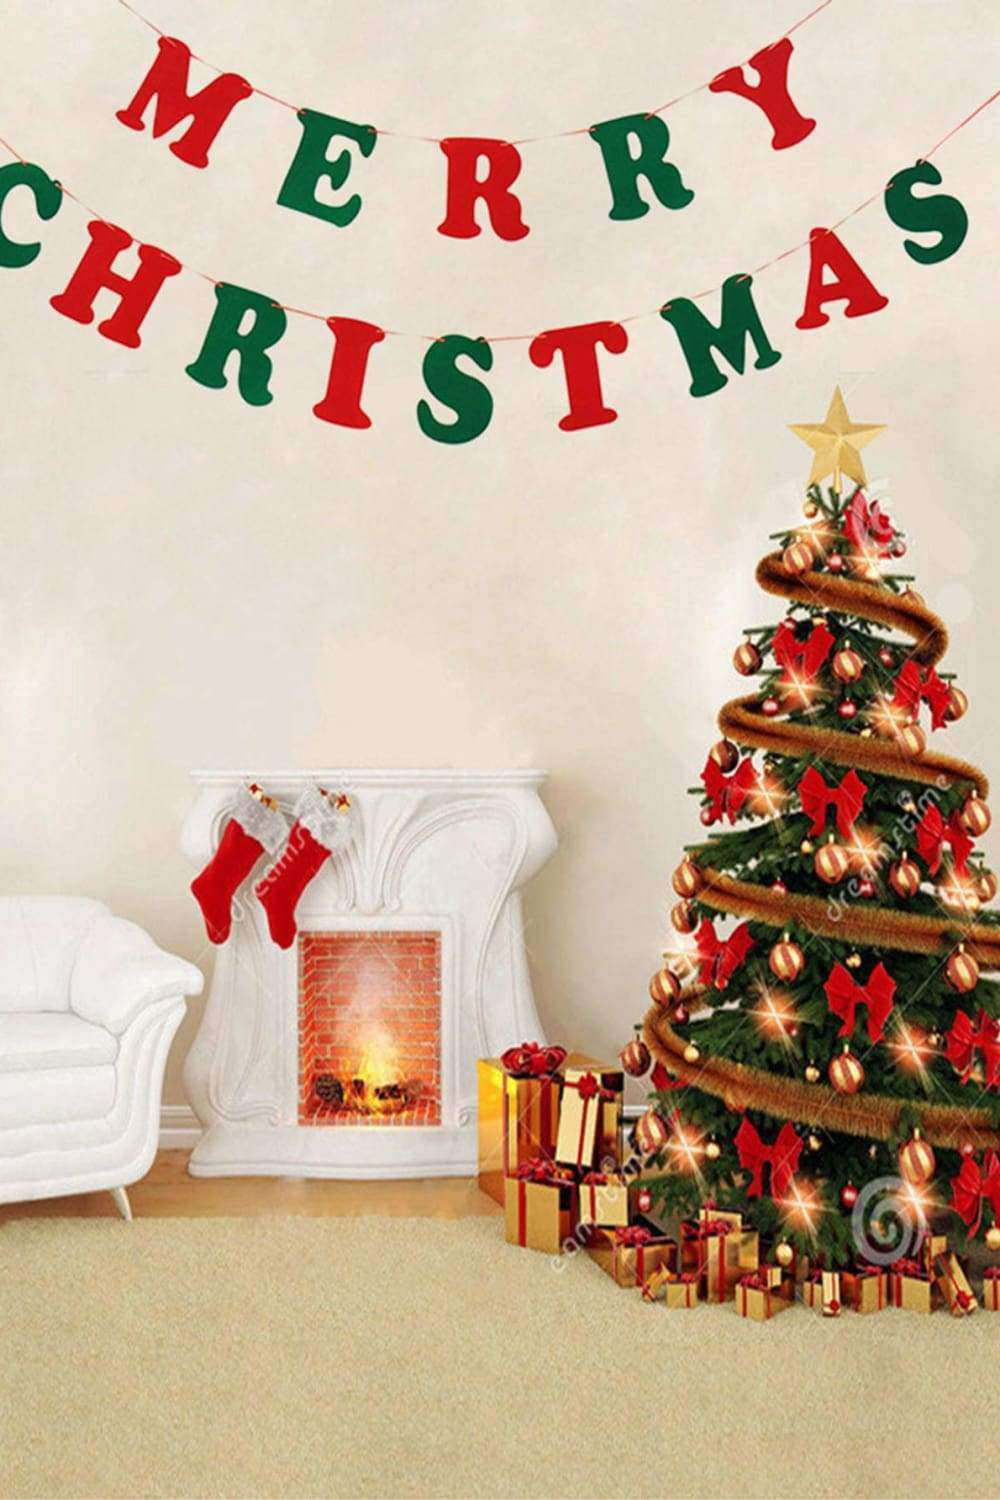 Merry Christmas Banner in Red & Green - Decor - Evan & Jane